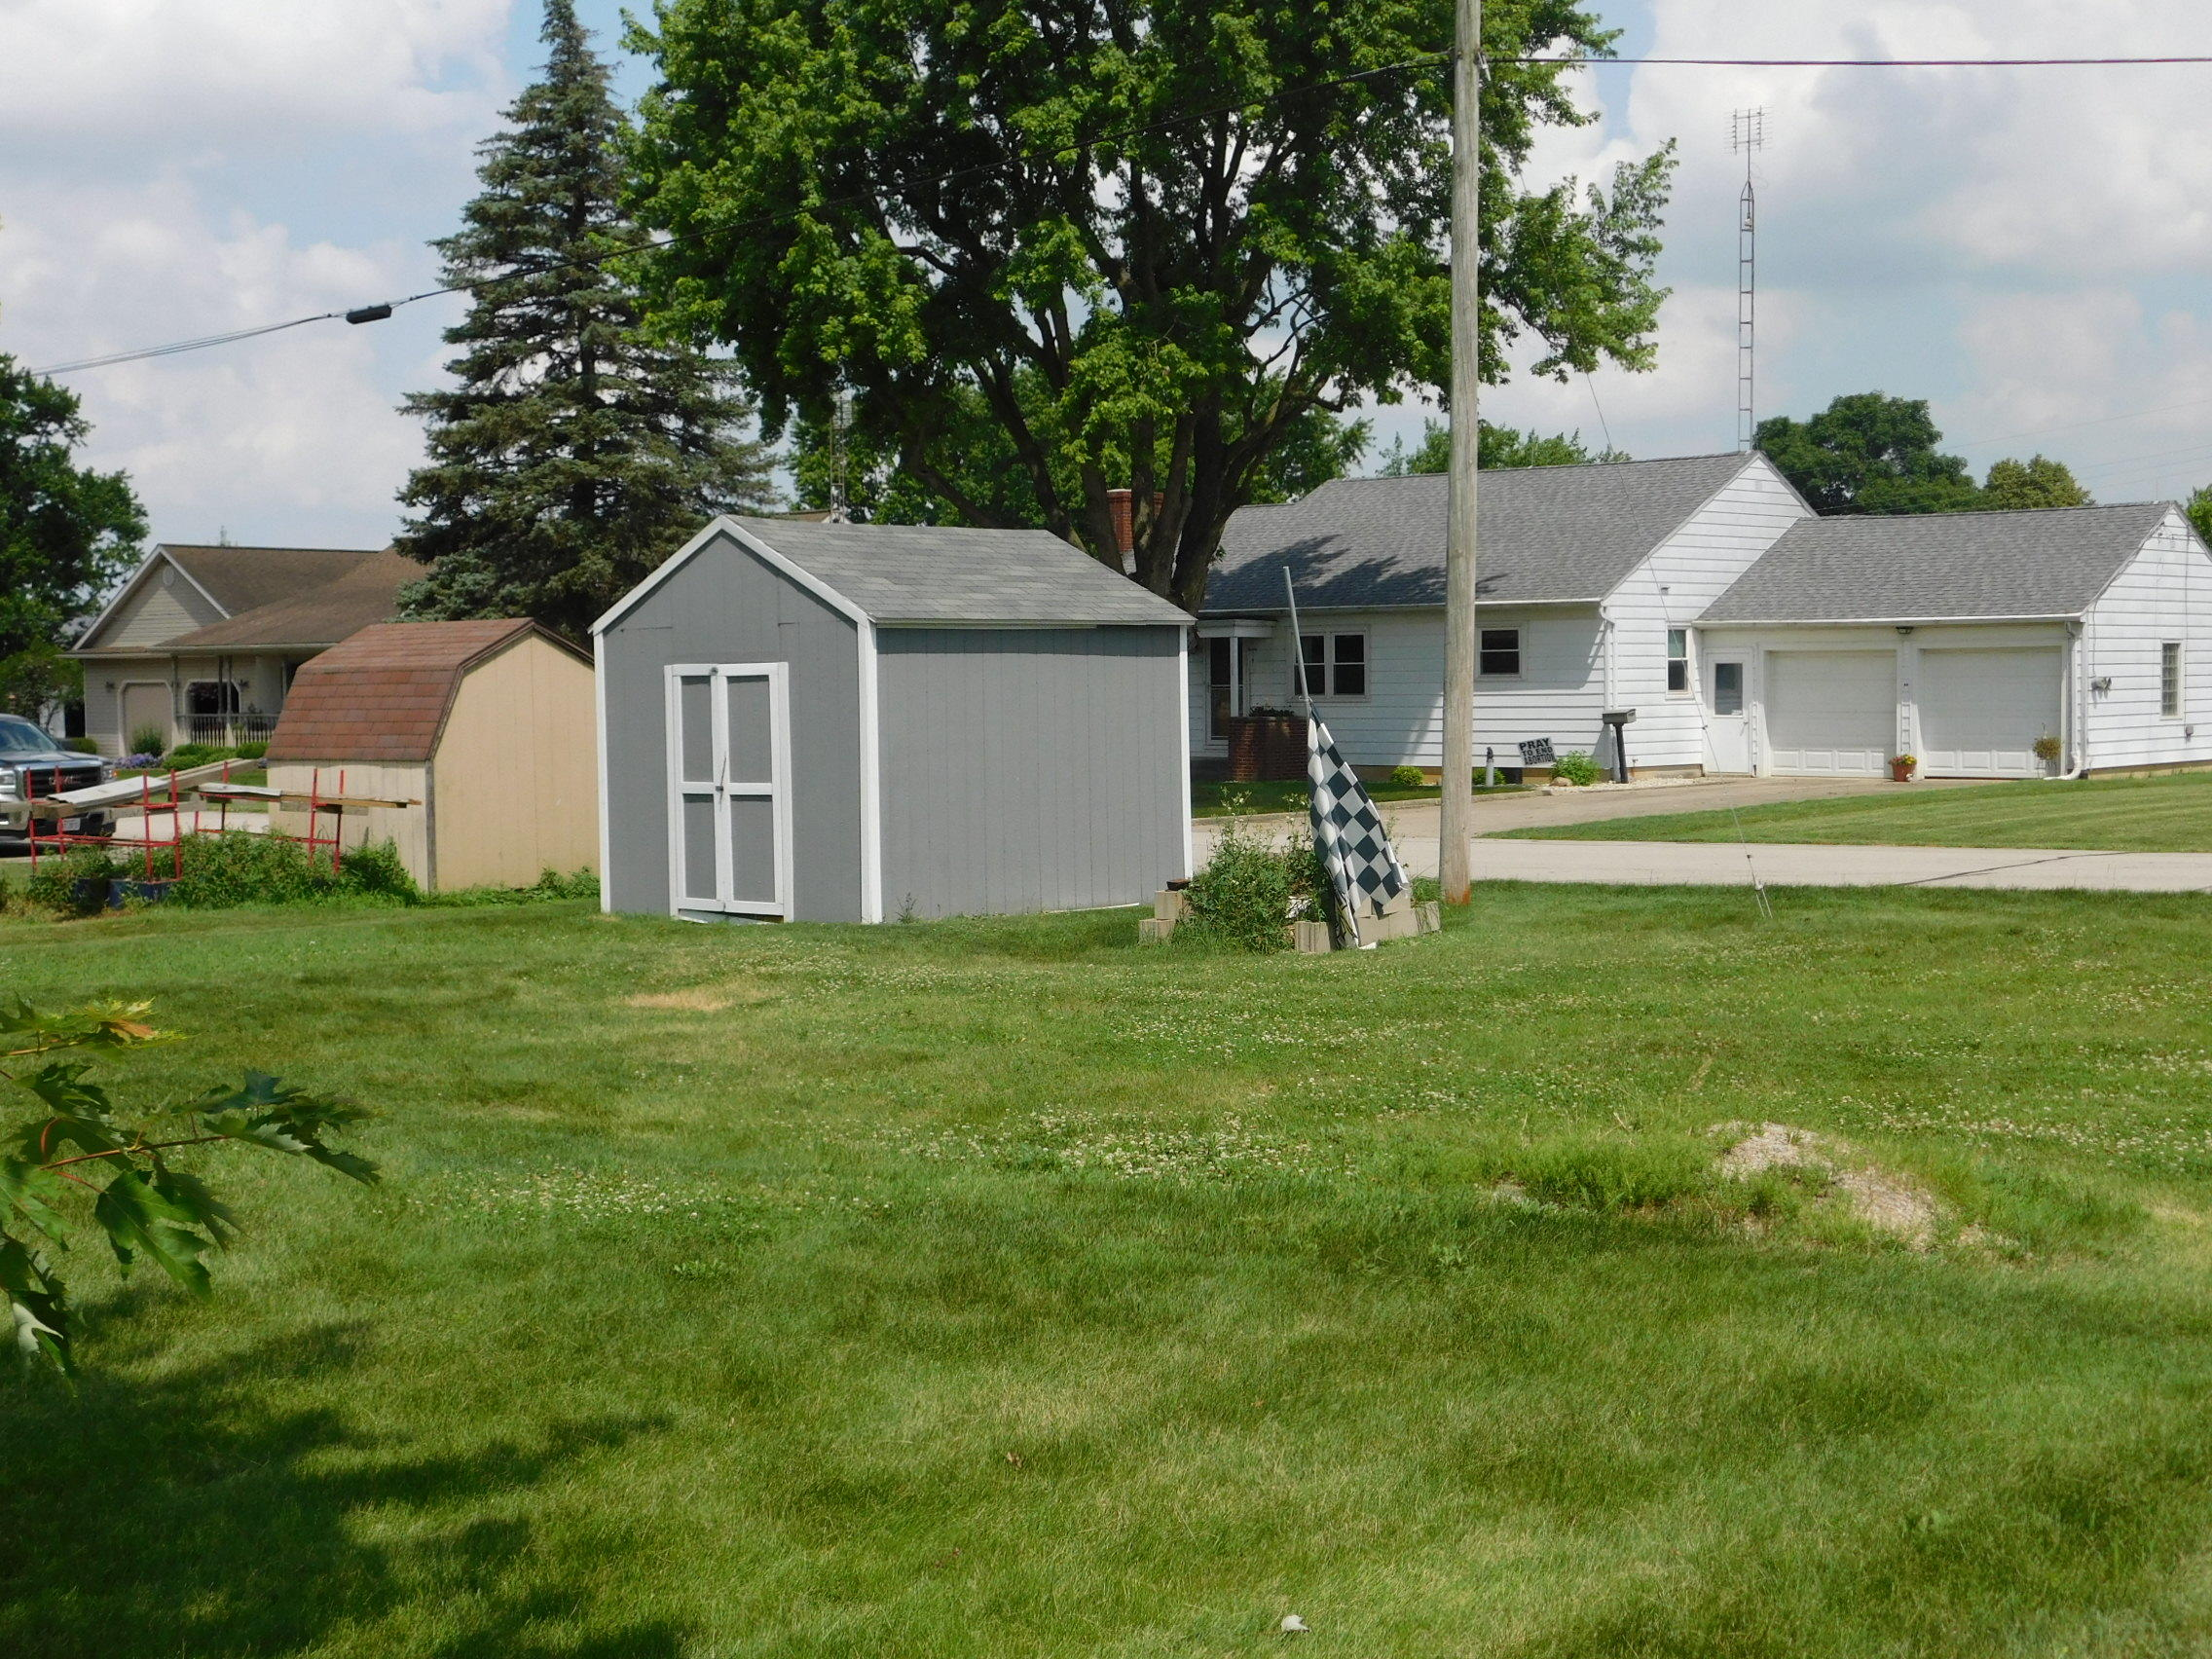 Photo 2 for 68 E Main St Osgood, OH 45351